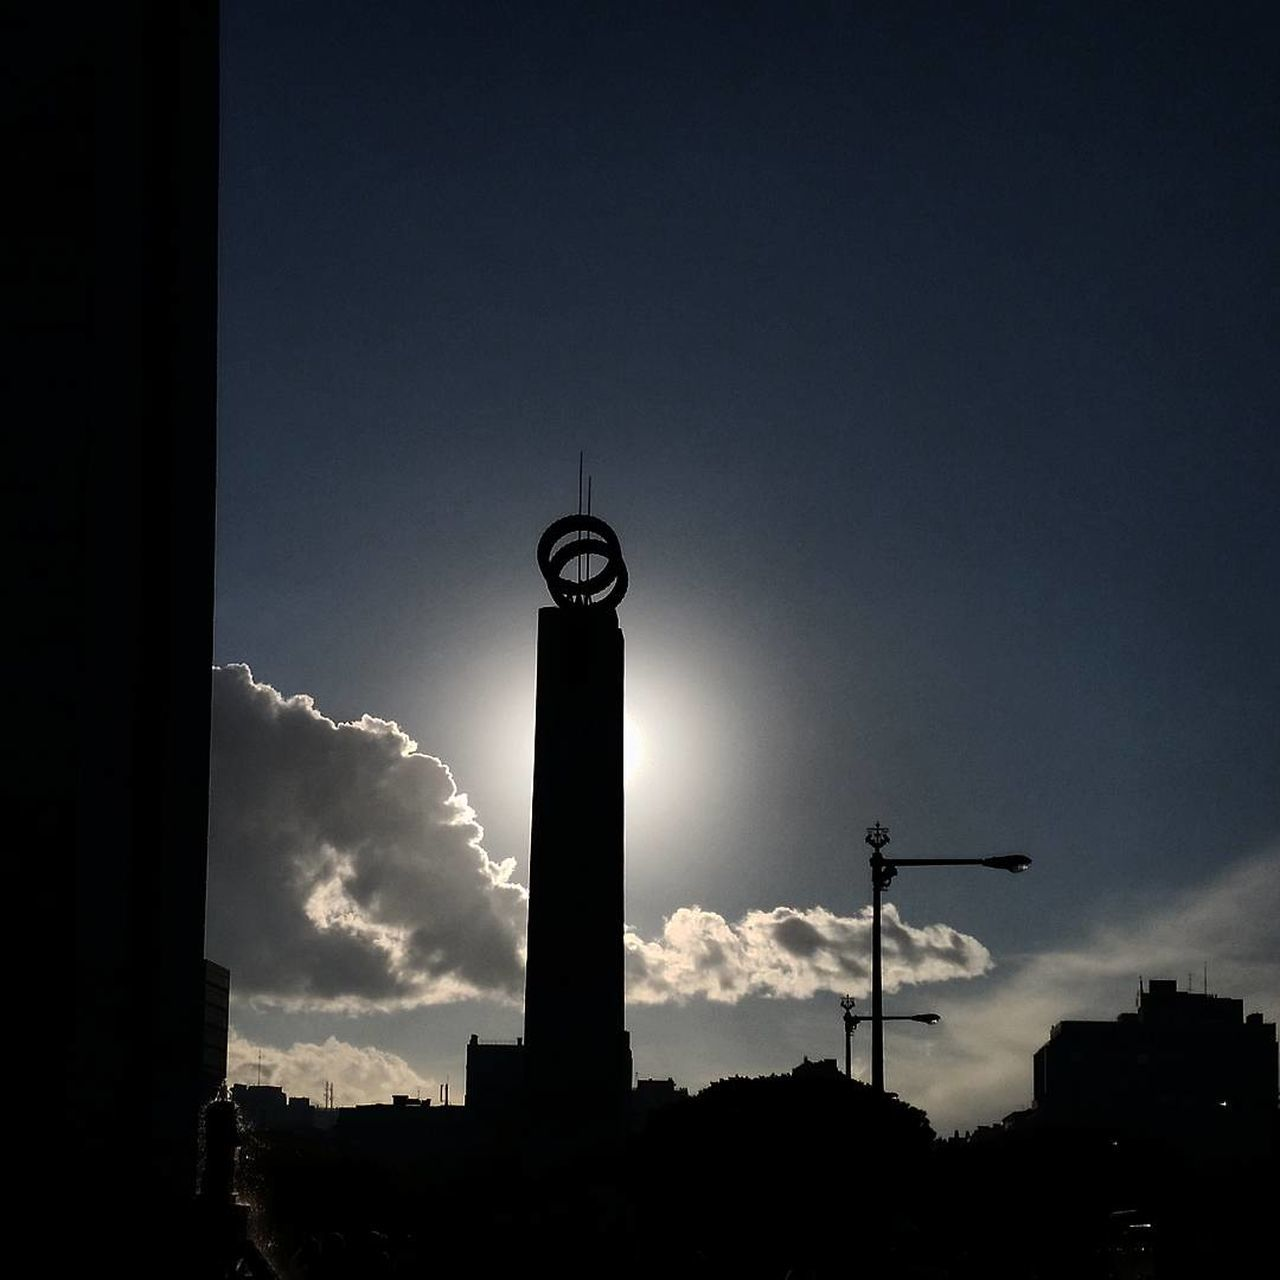 Sky Travel Destinations No People Low Angle View City Architecture Nature Eyemphotography Street Photography From Where I Stand Tranquility Streetphotography Cloud - Sky Built Structure City Life Sun Sunlight Sunset Silhouette Christmastime The City Light